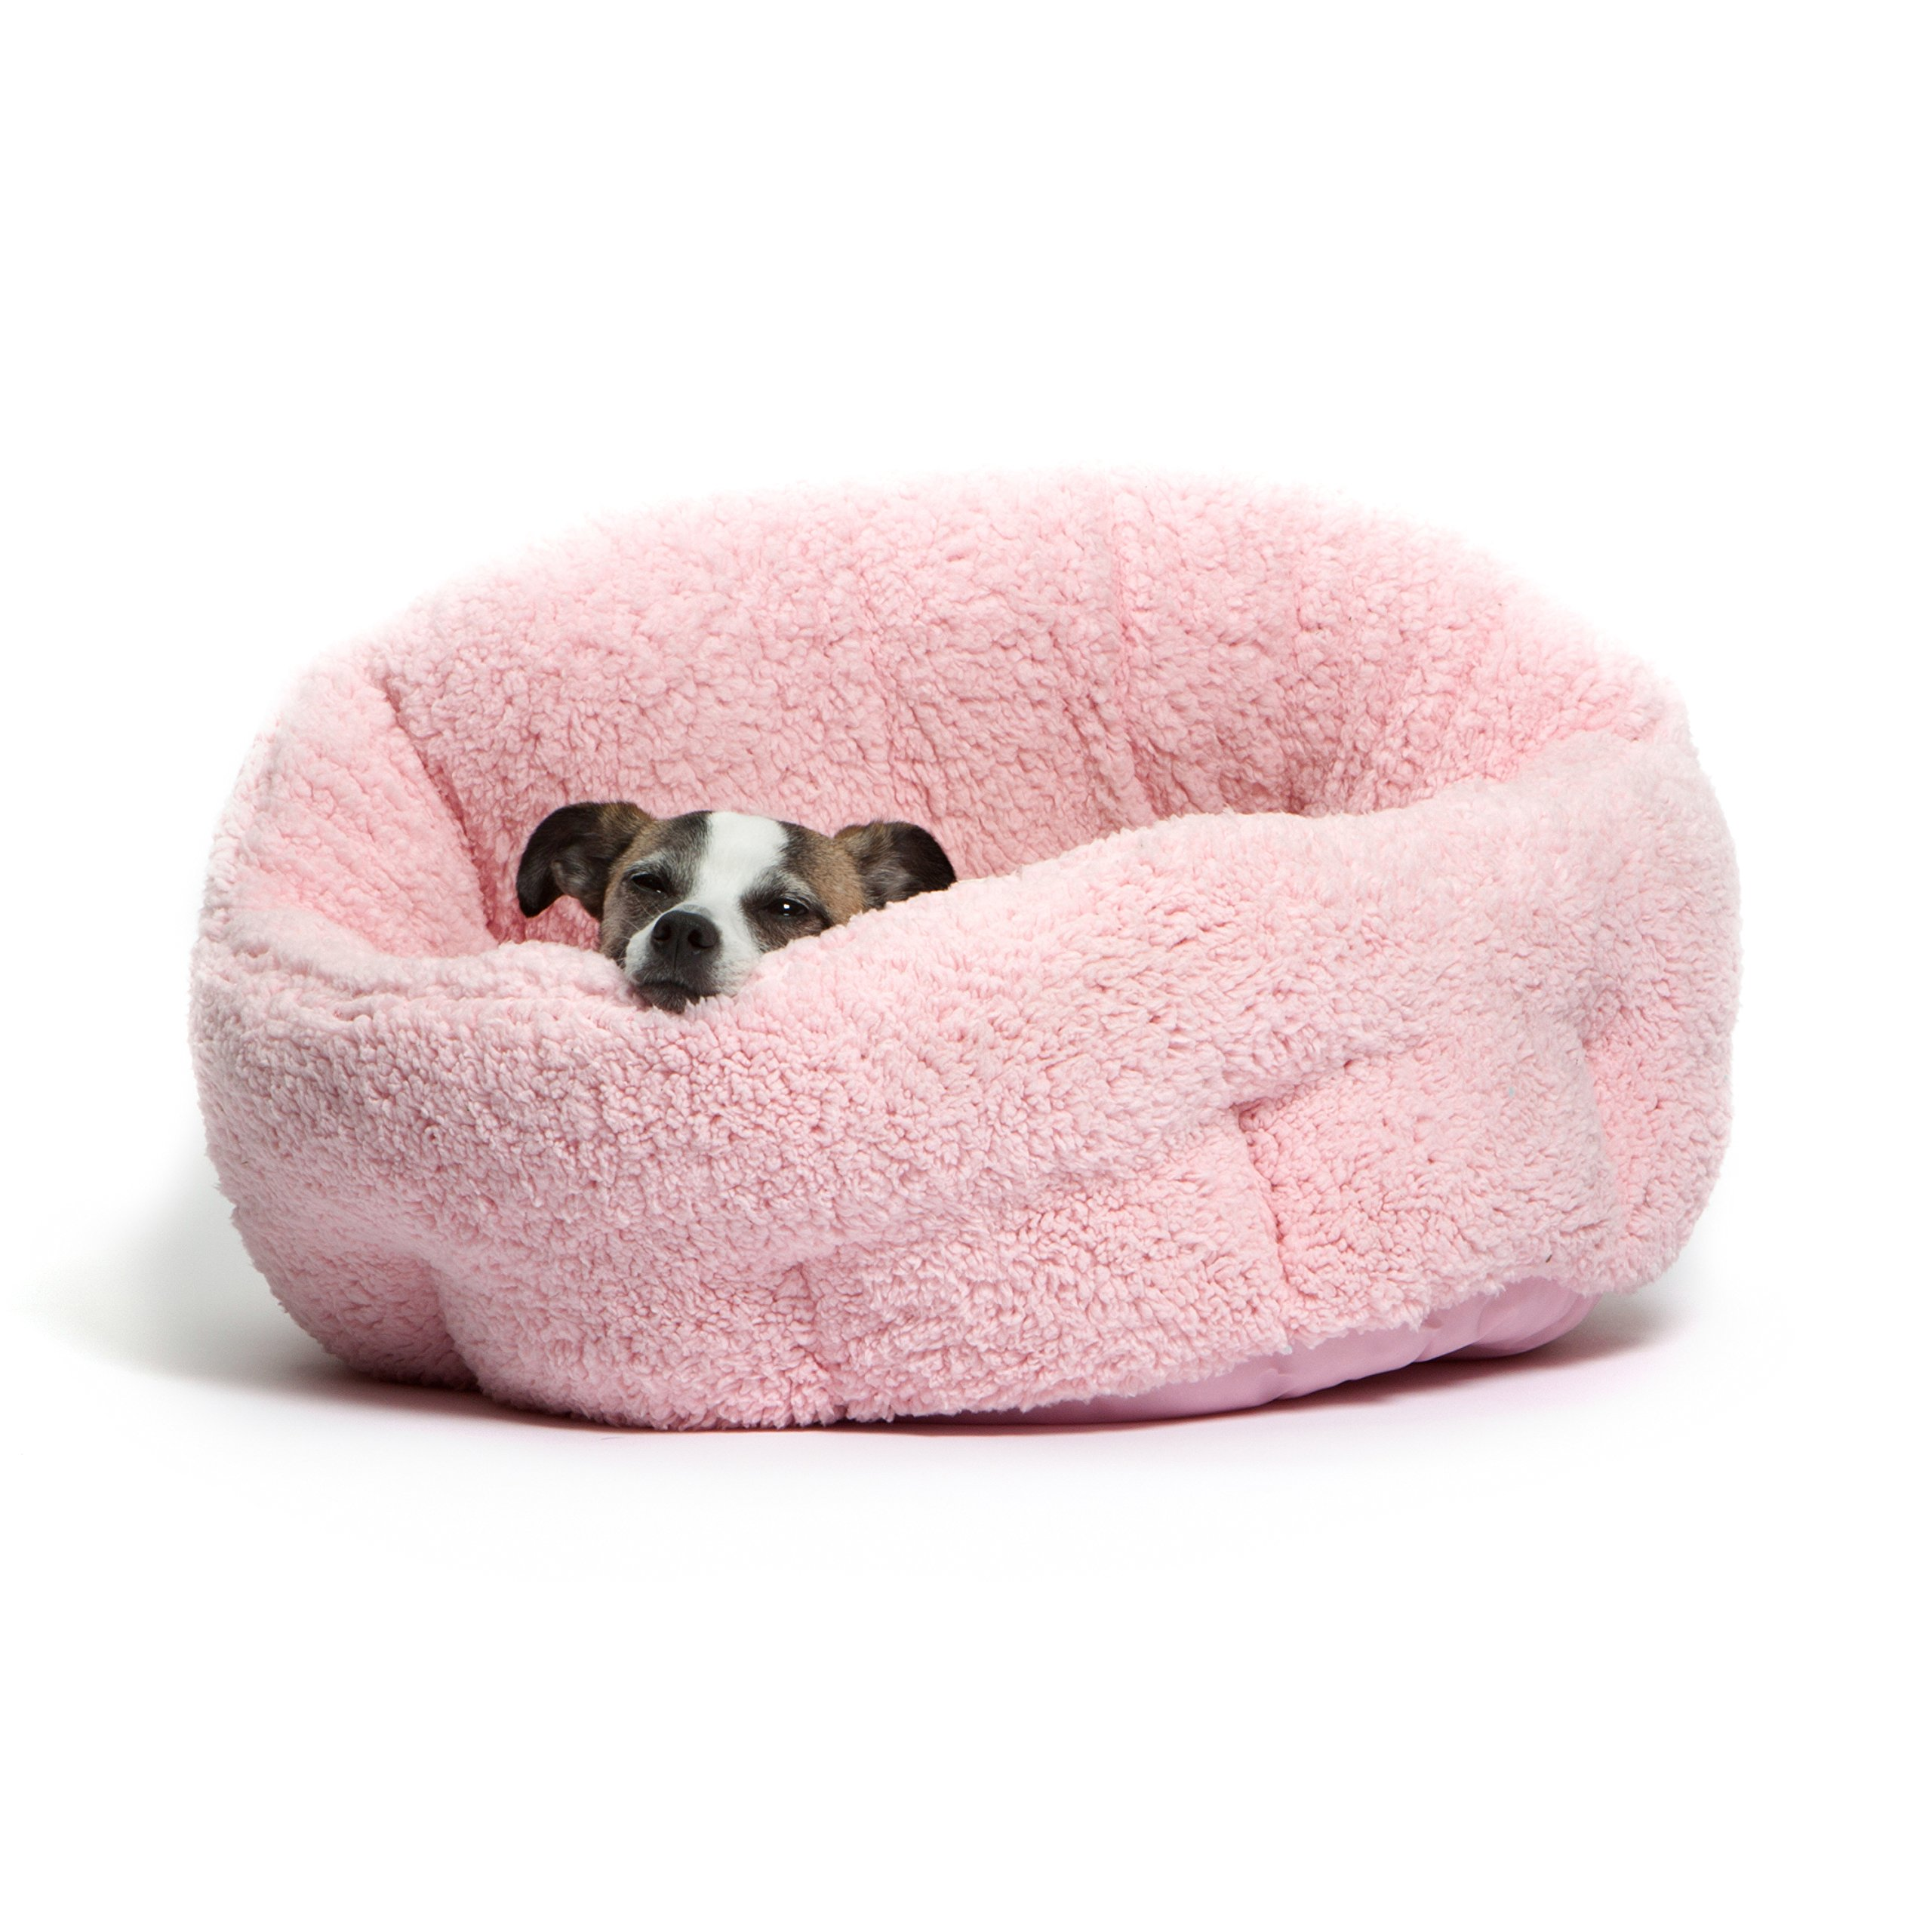 Best Friends by Sheri OrthoComfort Deep Dish Cuddler (20x20x12'') - Self-Warming  Cat and Dog Bed, Pink